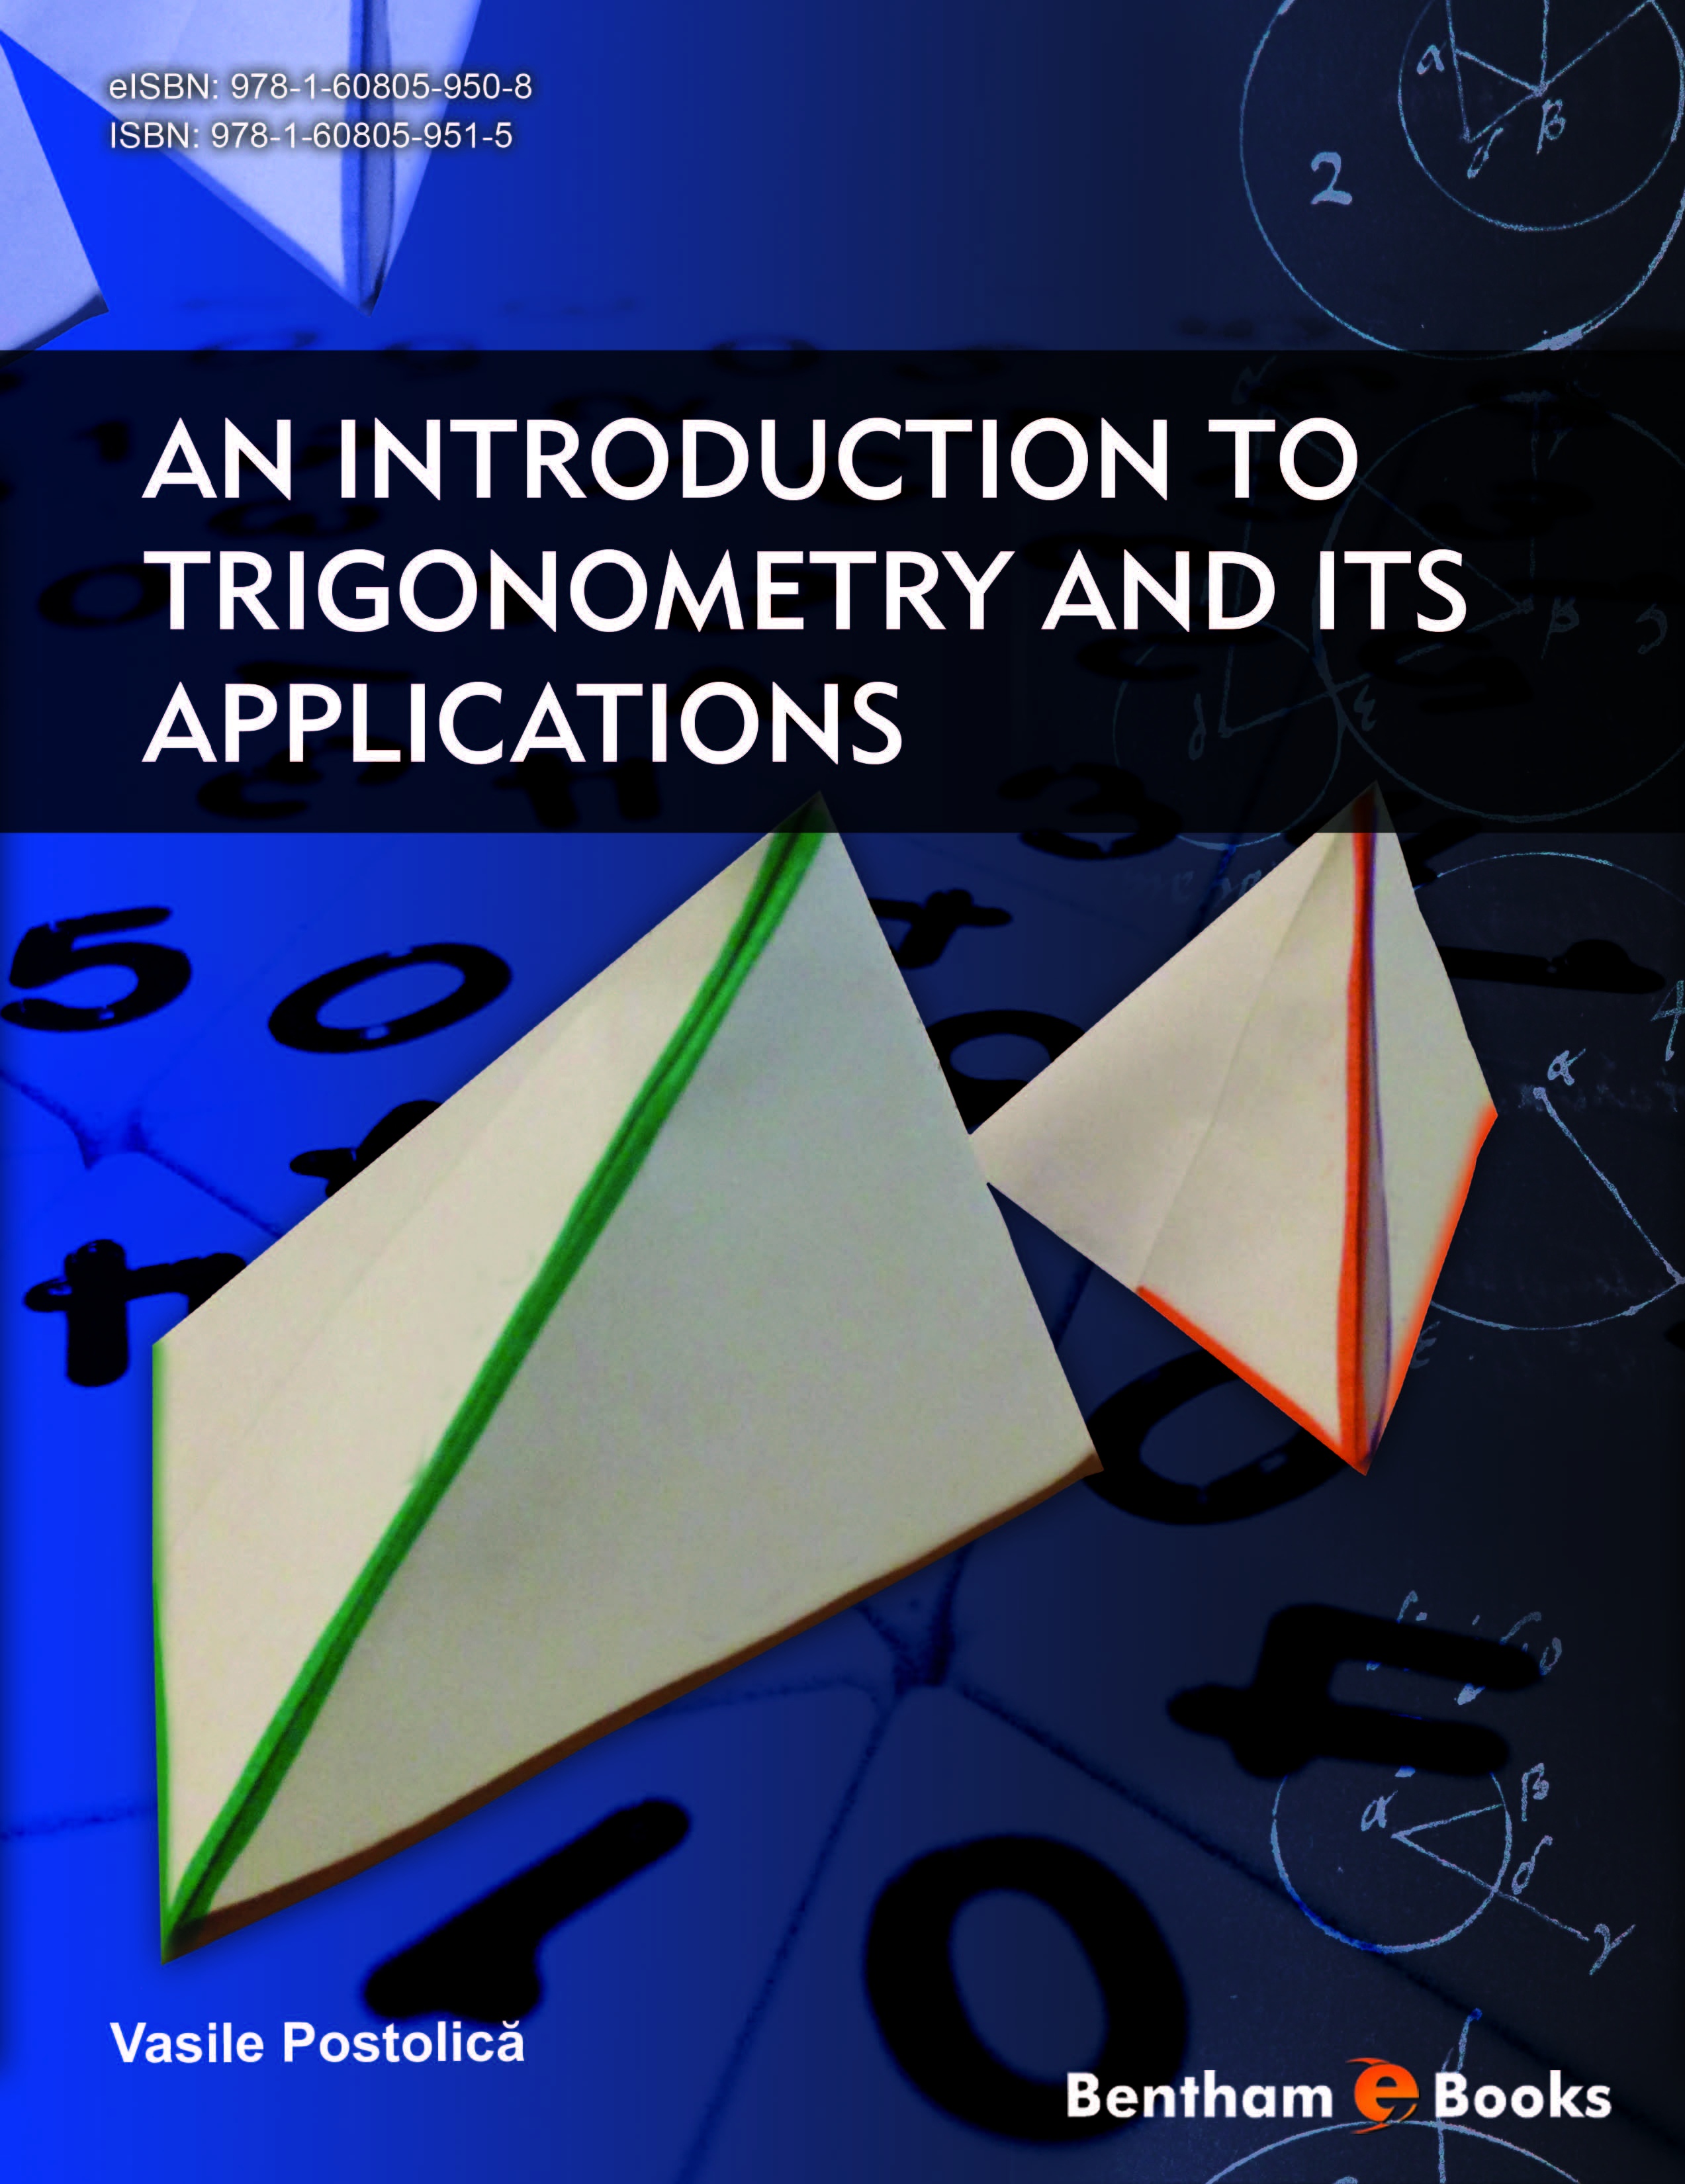 An Introduction to Trigonometry and its Applications